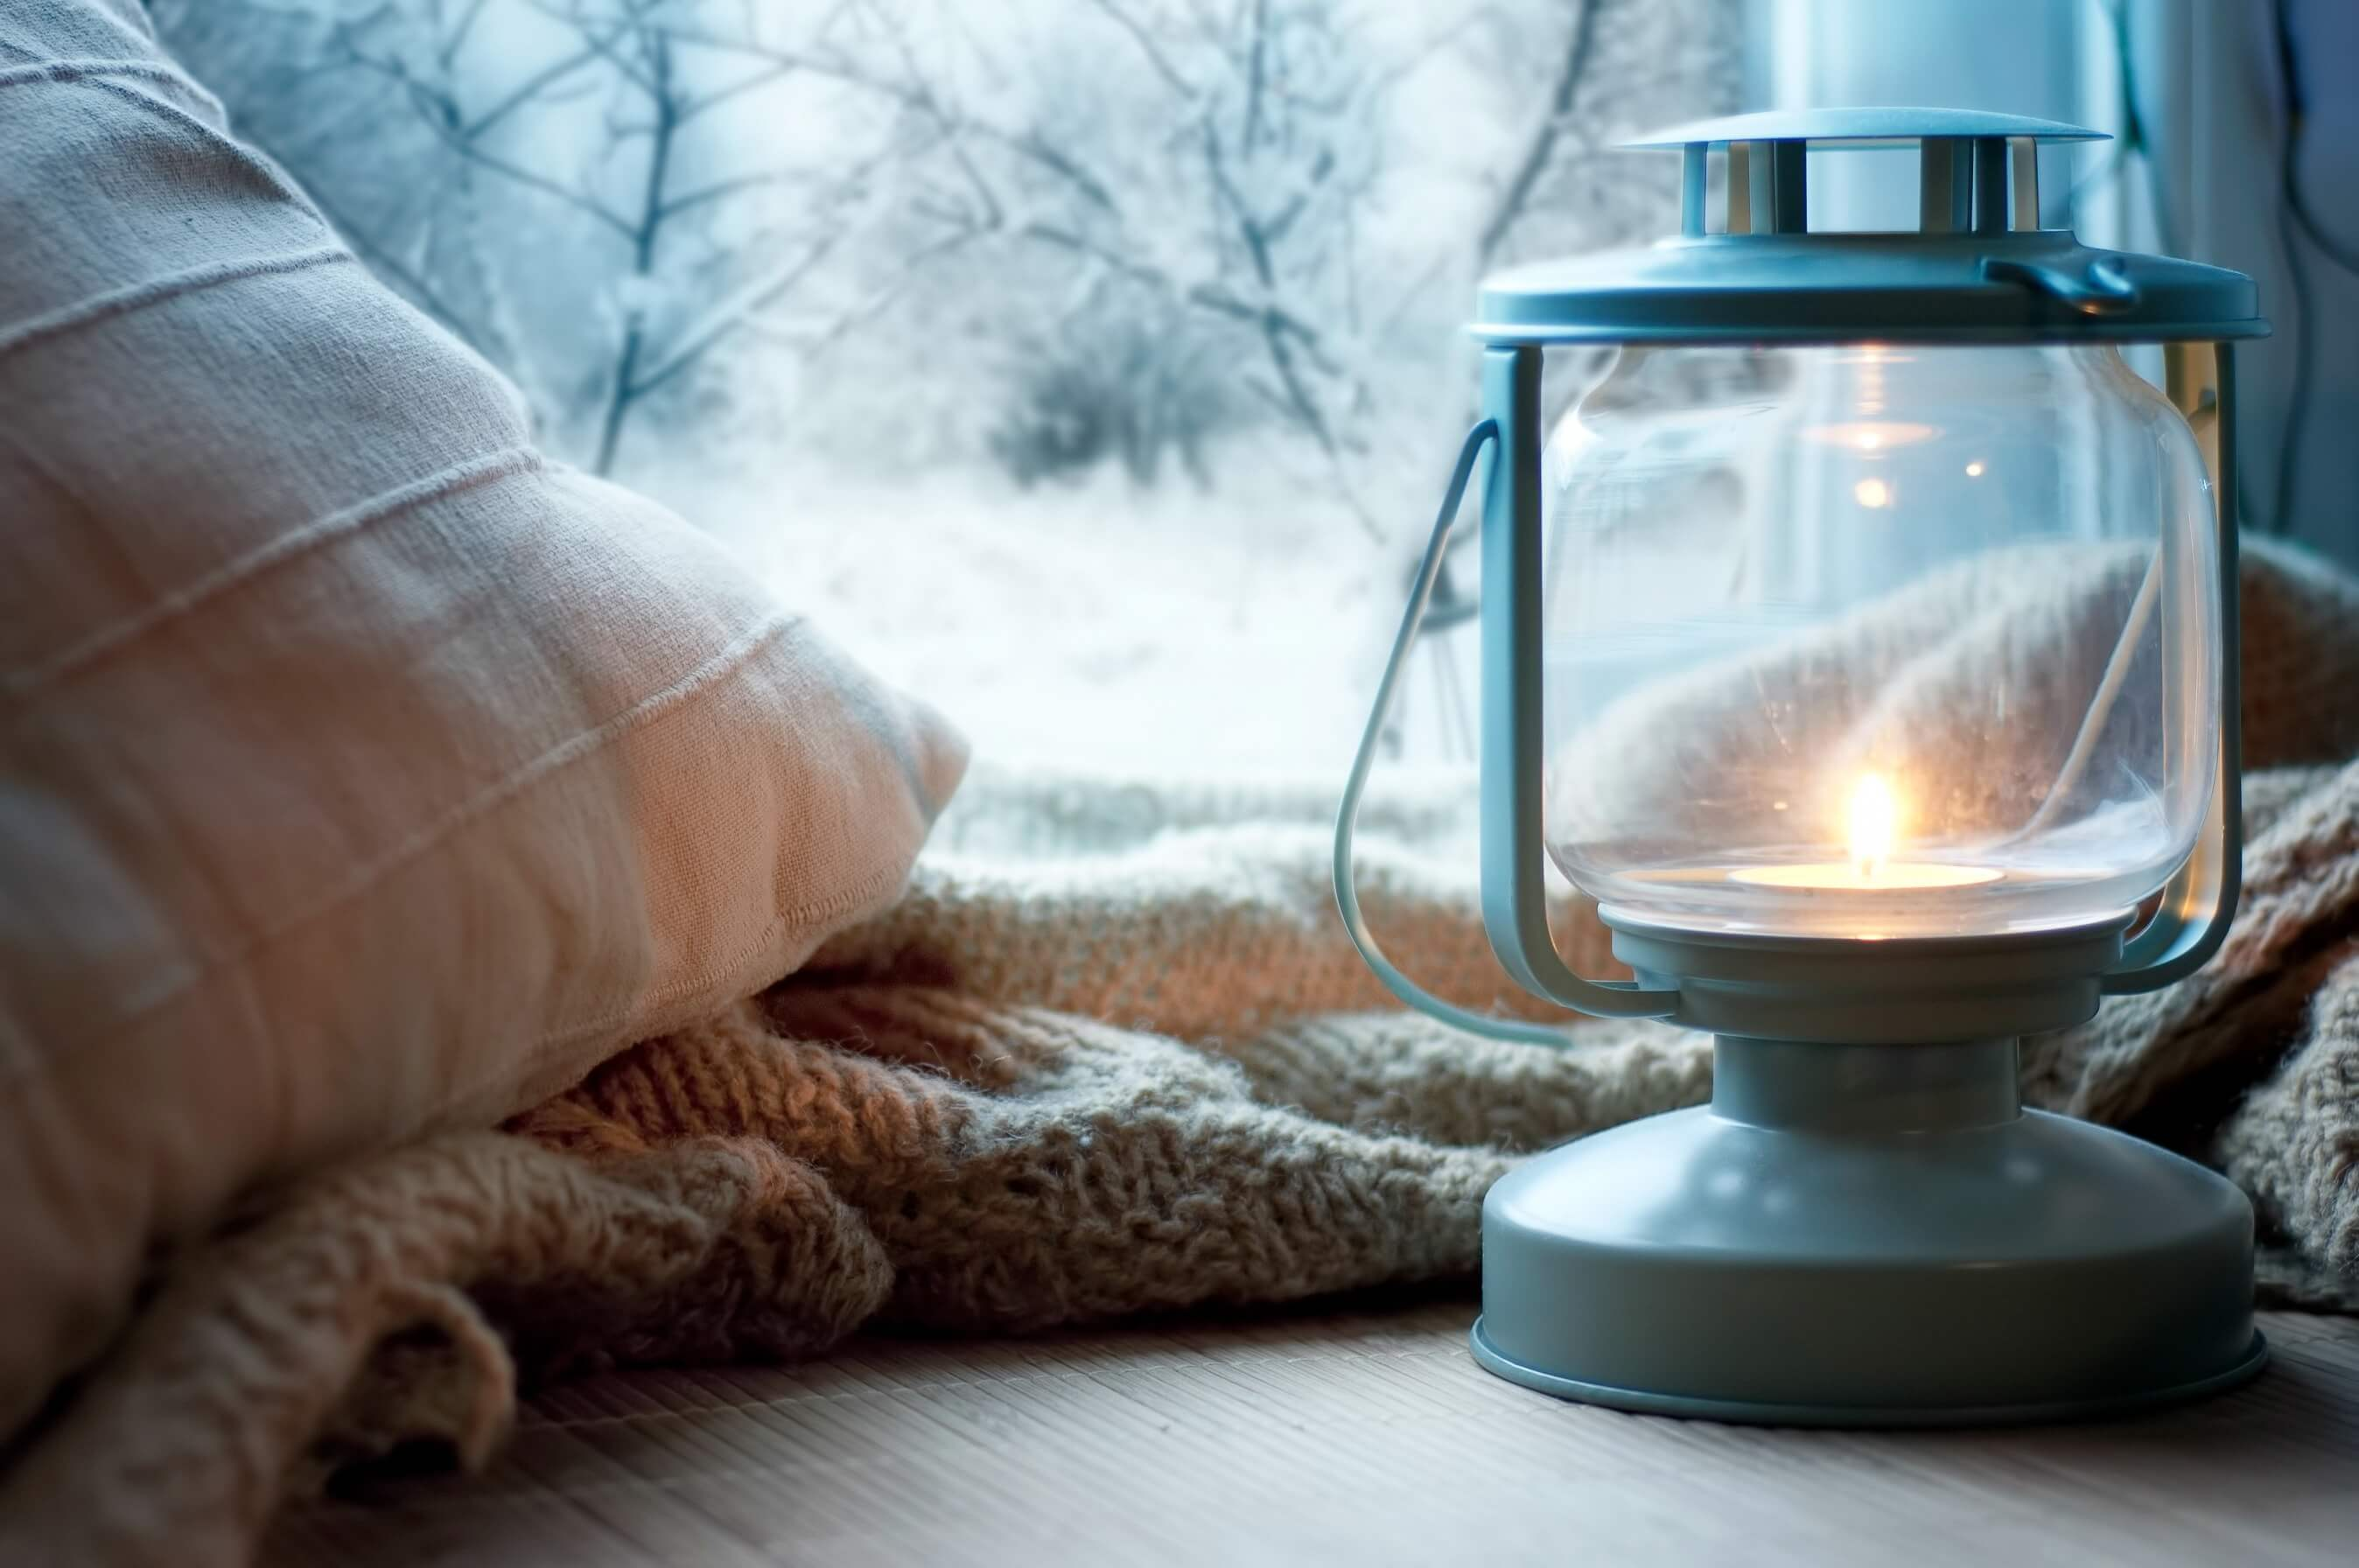 Get your home ready for winter - snowy scene with lantern and throw